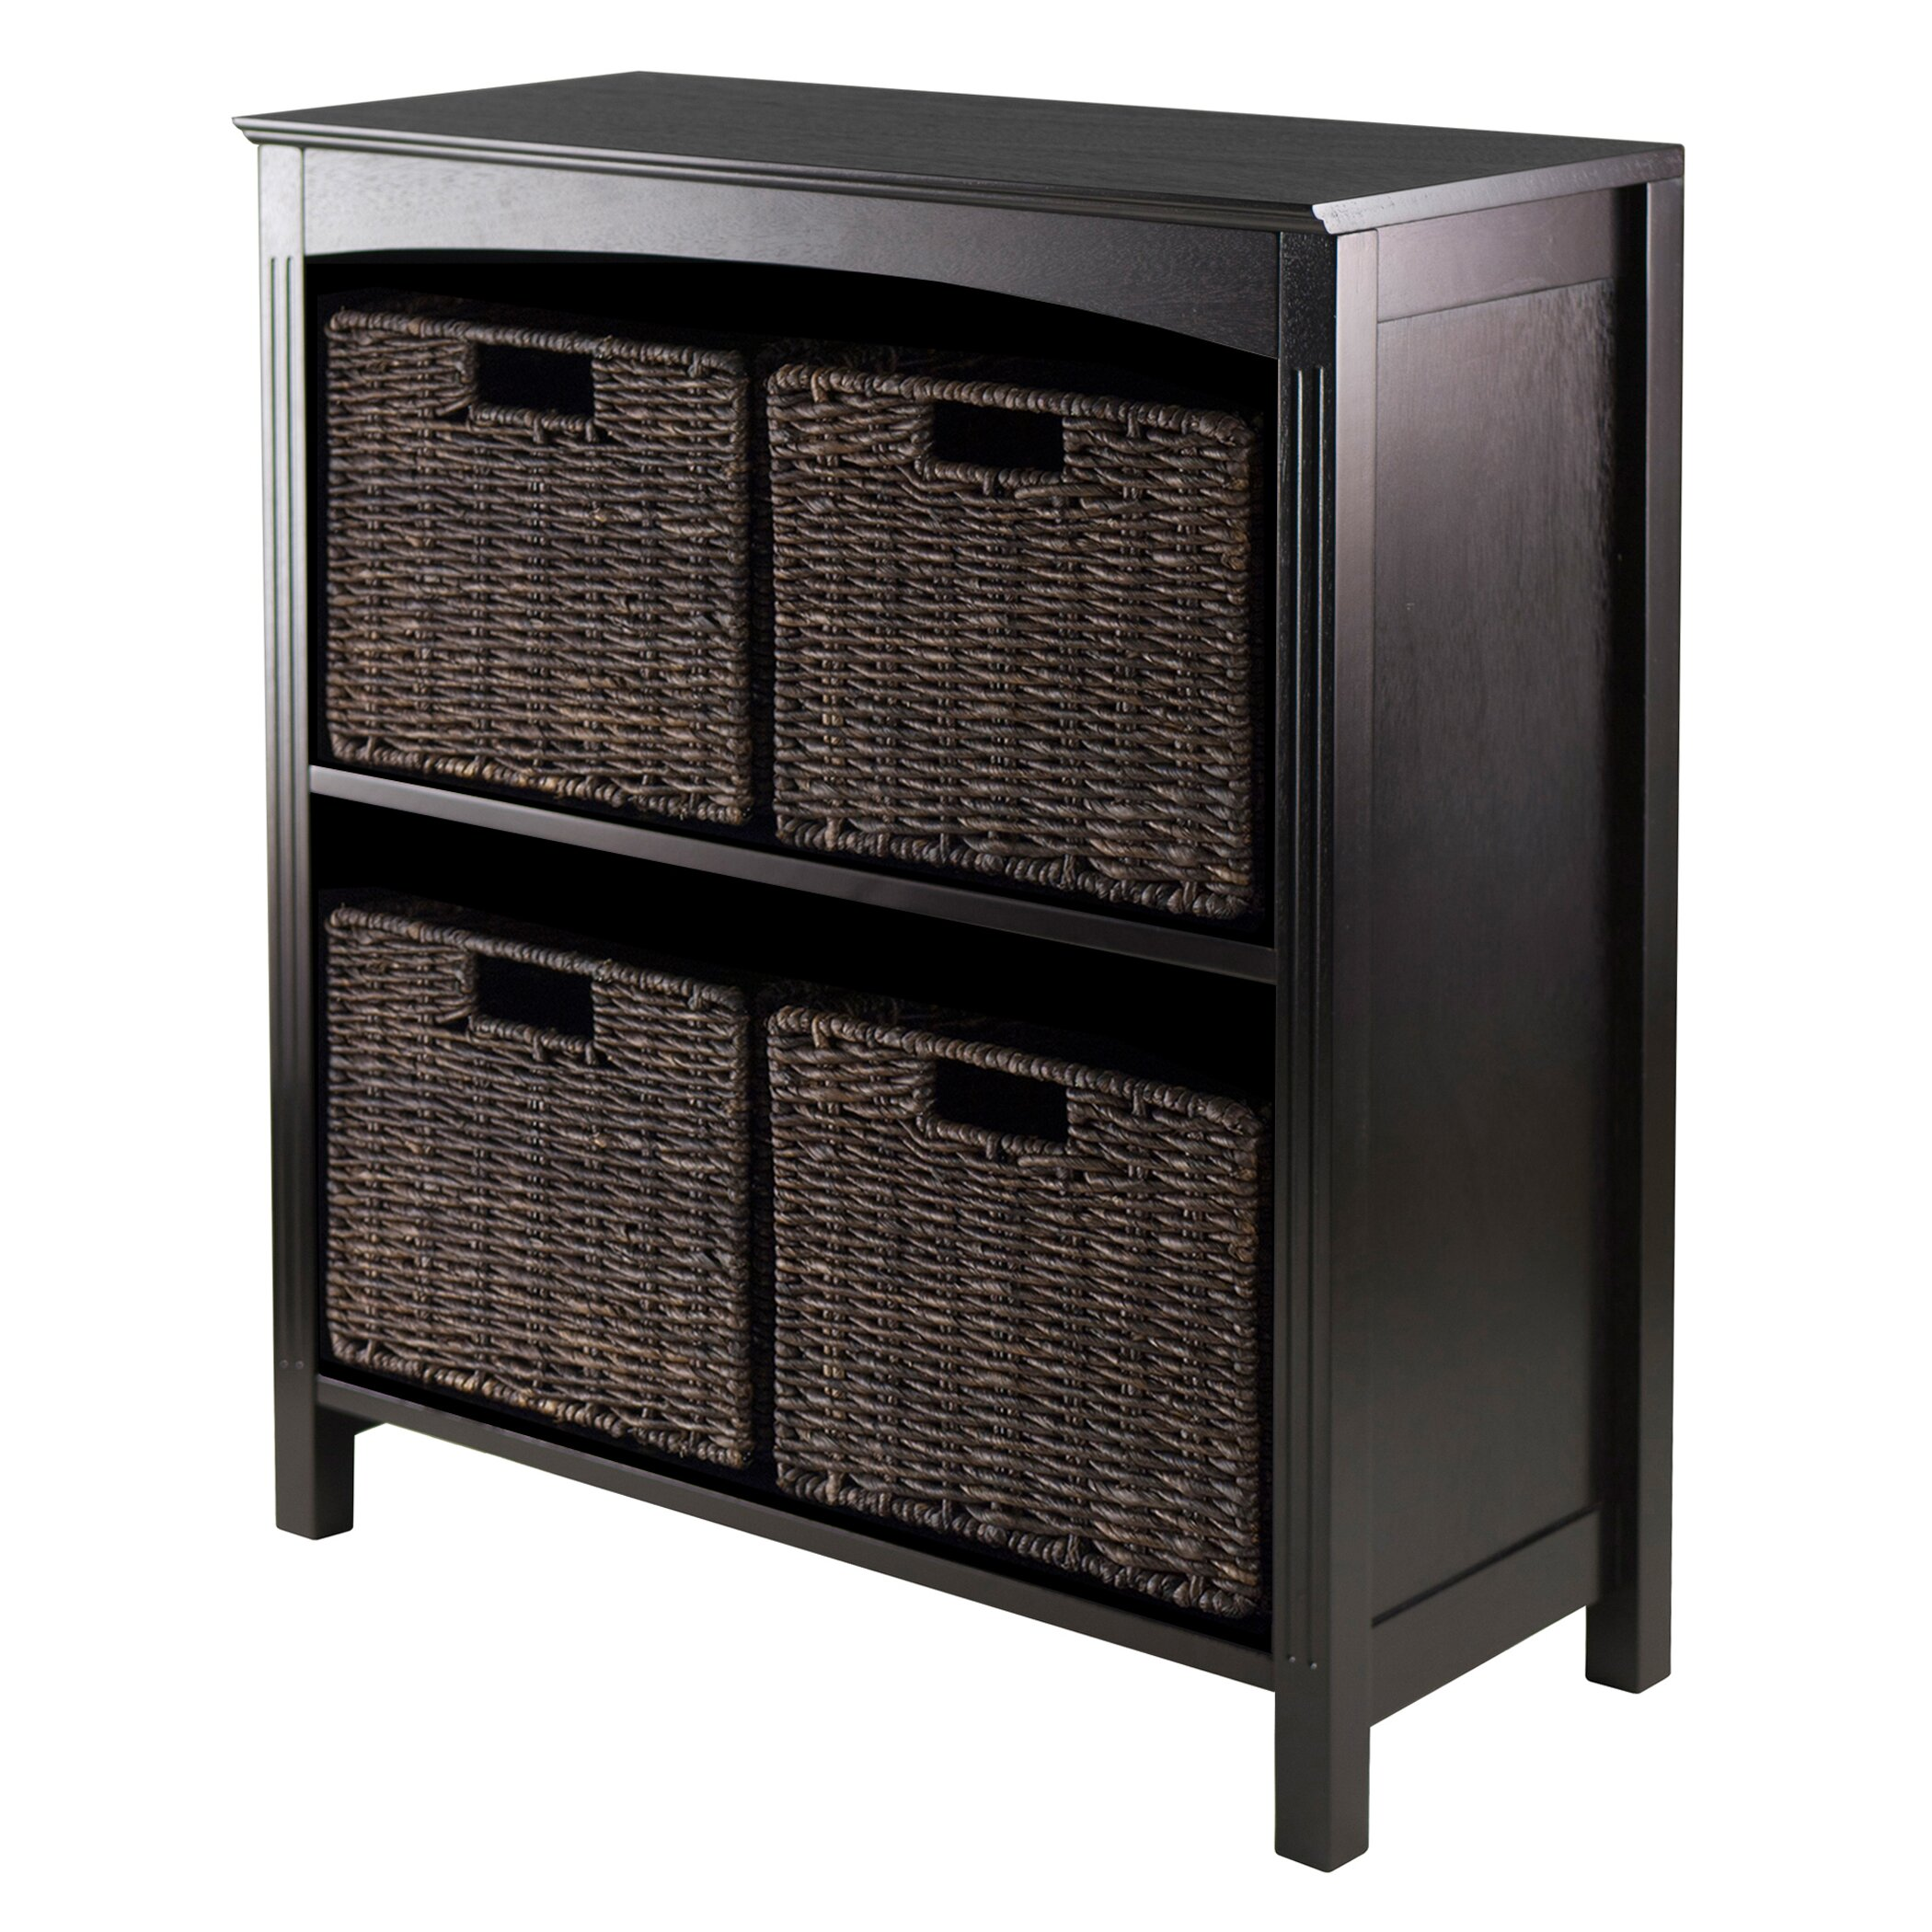 Charlton home martinsville 4 drawer storage shelf for Storage charlton